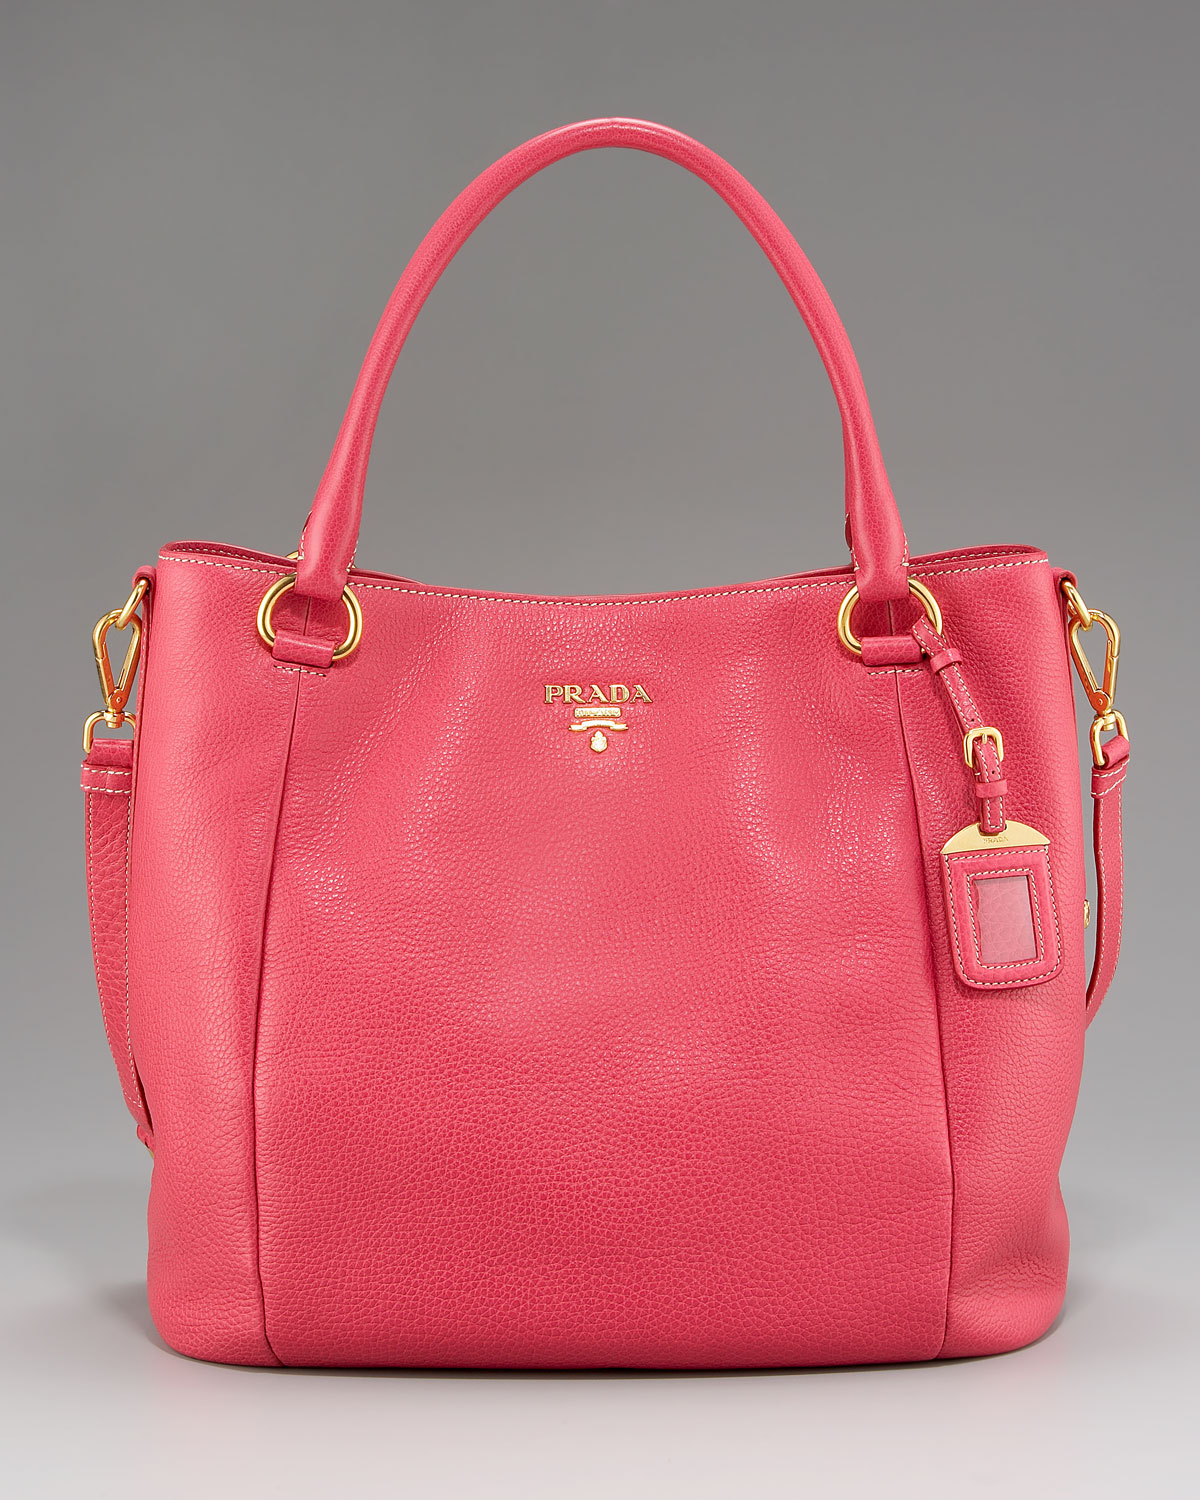 Prada Vitello Daino Satchel in Pink | Lyst